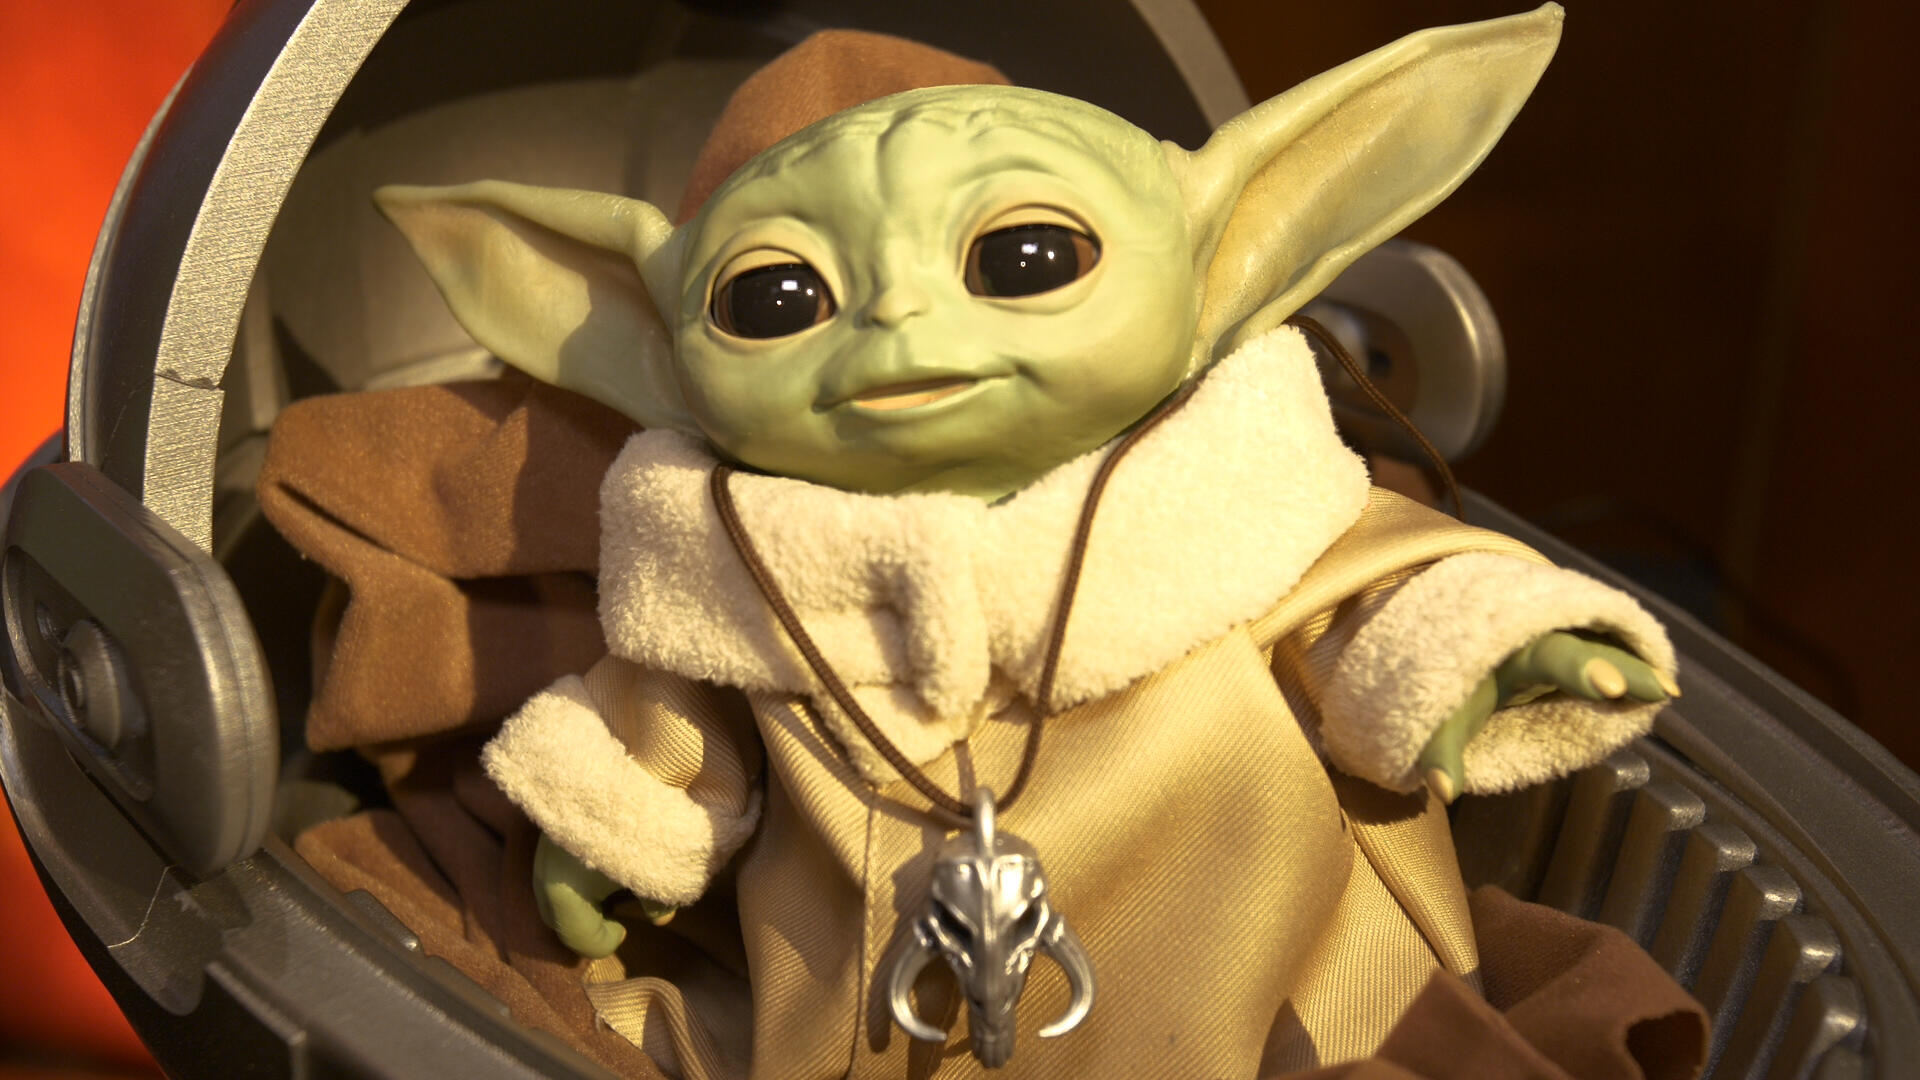 Video: First look at the best Baby Yoda toys coming this year